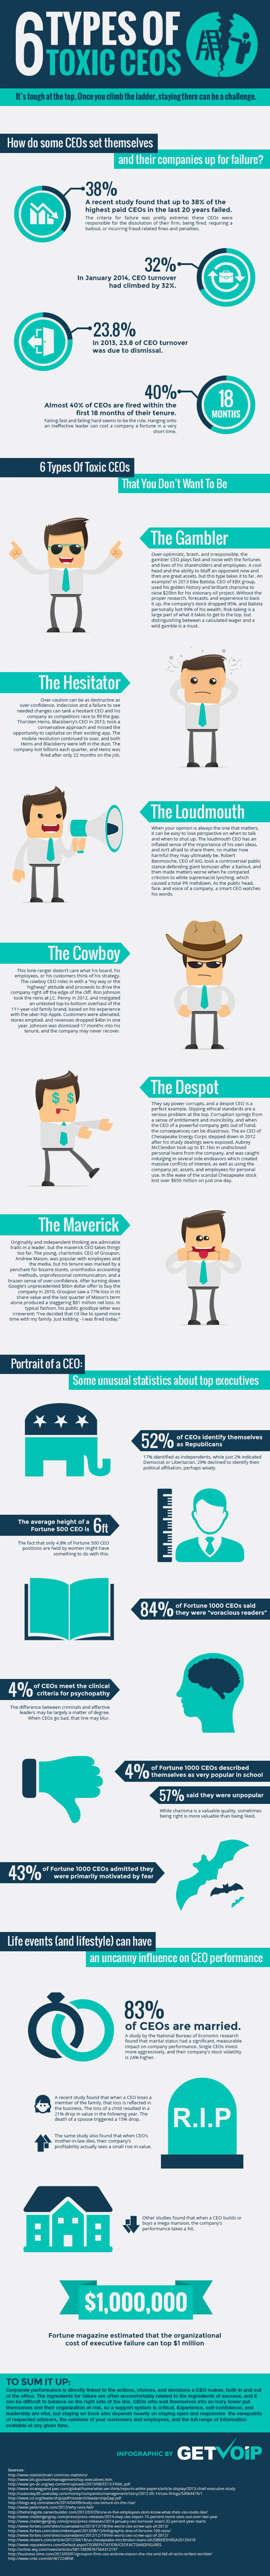 6 Types of Toxic CEOs Infographic